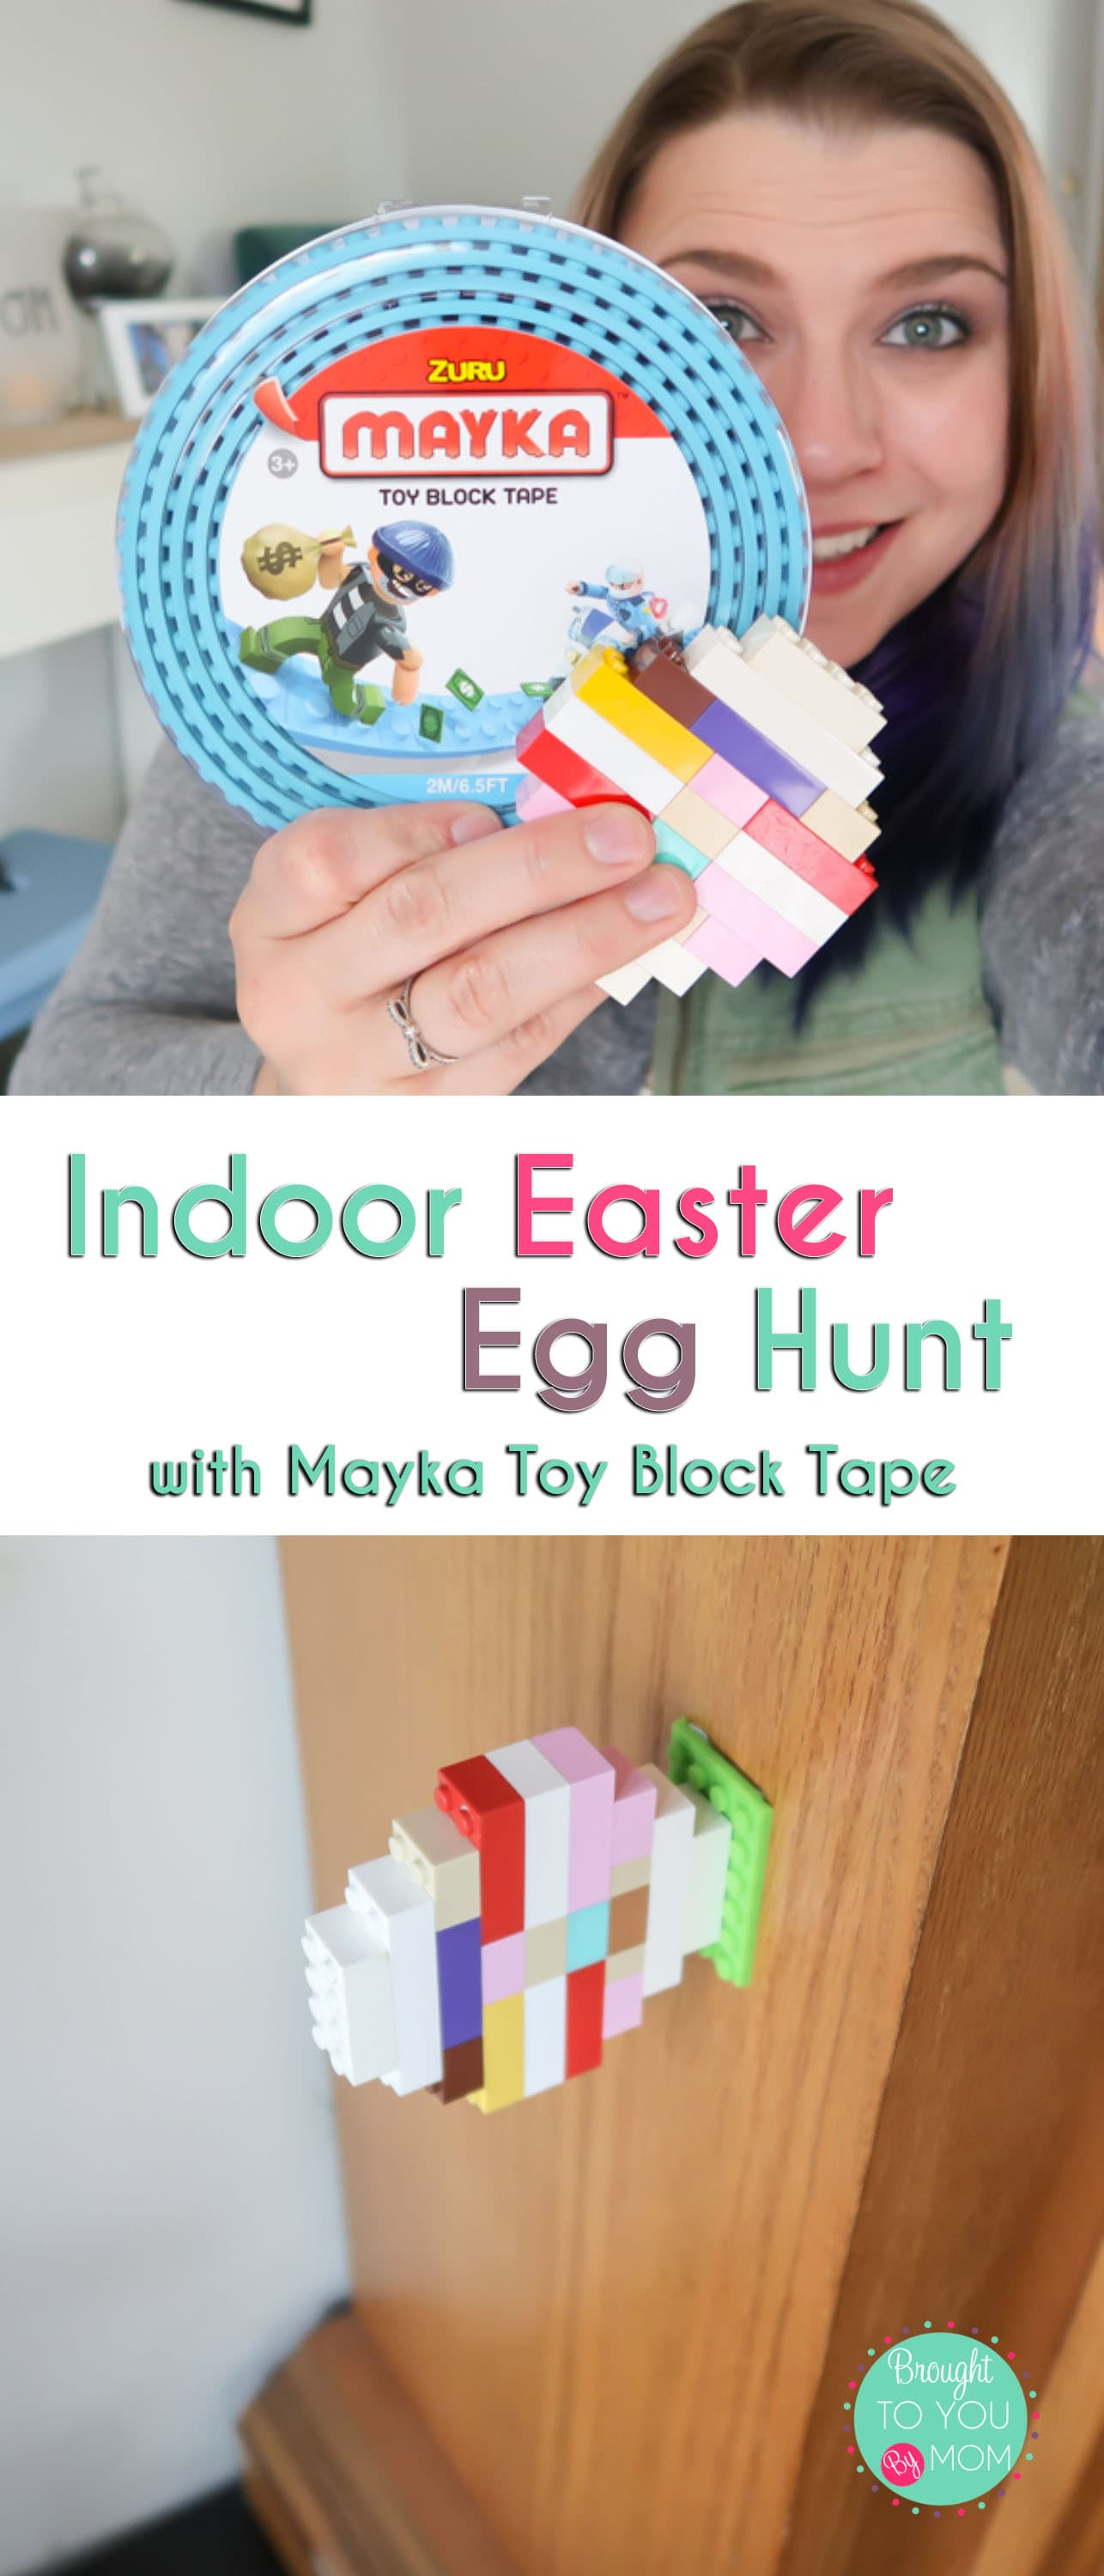 Have an indoor Easter egg hunt using toy blocks and Mayka Toy Block Tape. Need an idea about how to do easter egg hunt indoors? This is a simple and fun way to create Easter eggs with toy bricks and have fun finding them almost anywhere inside. #ad #MaykaWorld #MaykaTape #Easter #Kids #EasterEggHunt